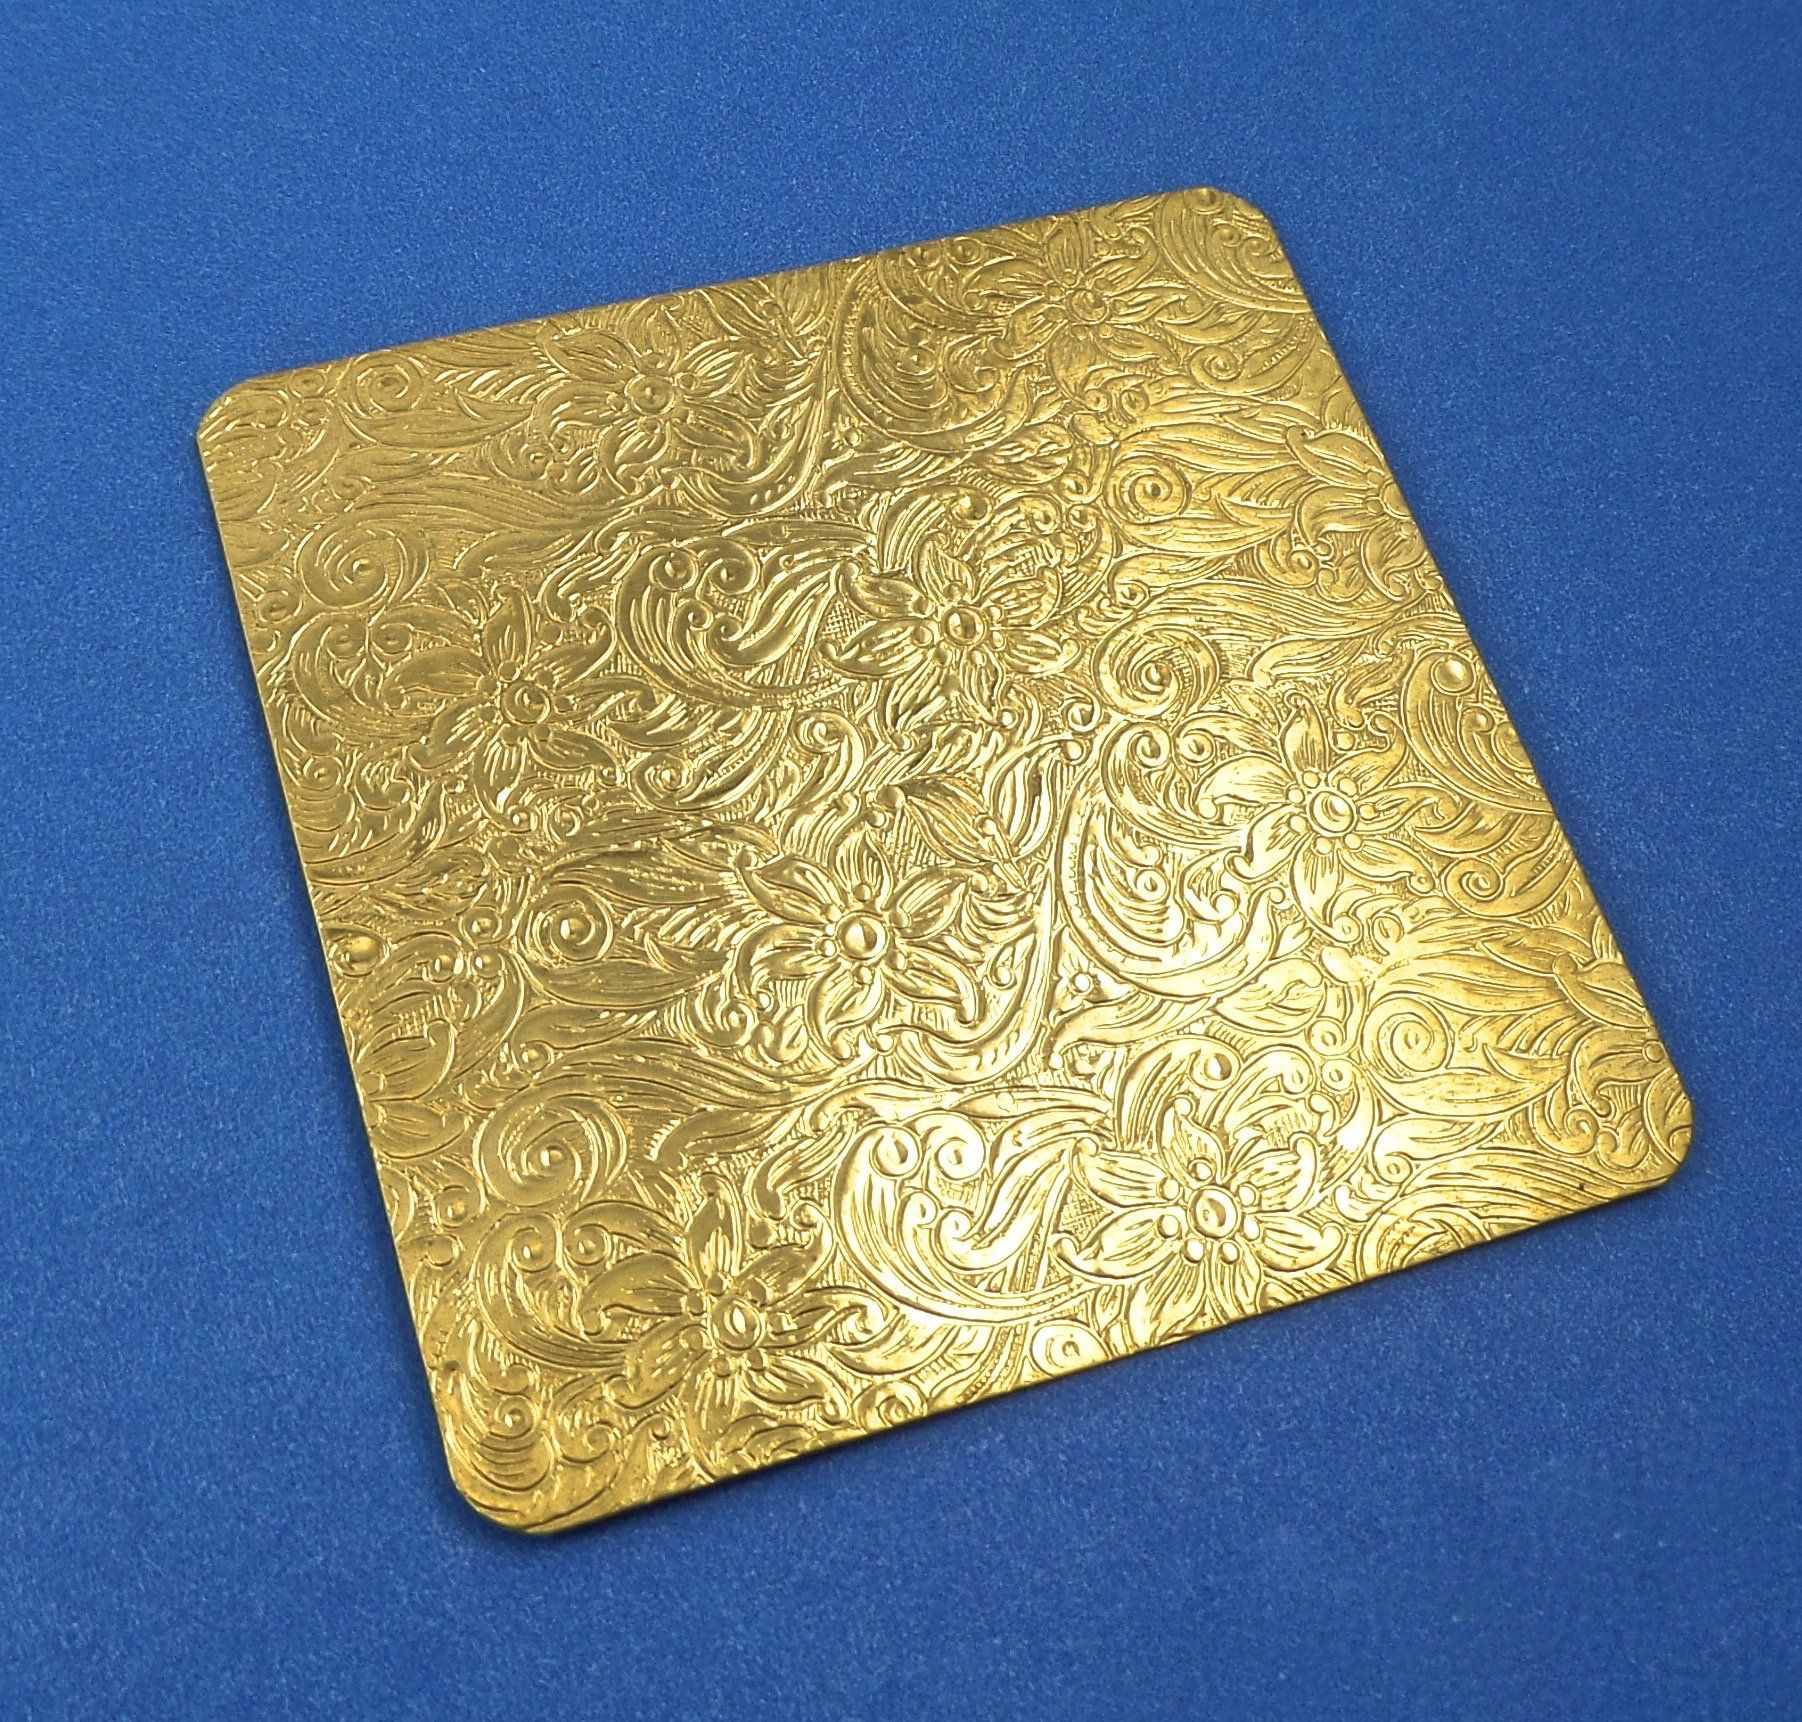 Small Floral Paisley Rolling Mill Texture Plate Pattern Etsy In 2020 Brass Texture Rolling Mill Texture